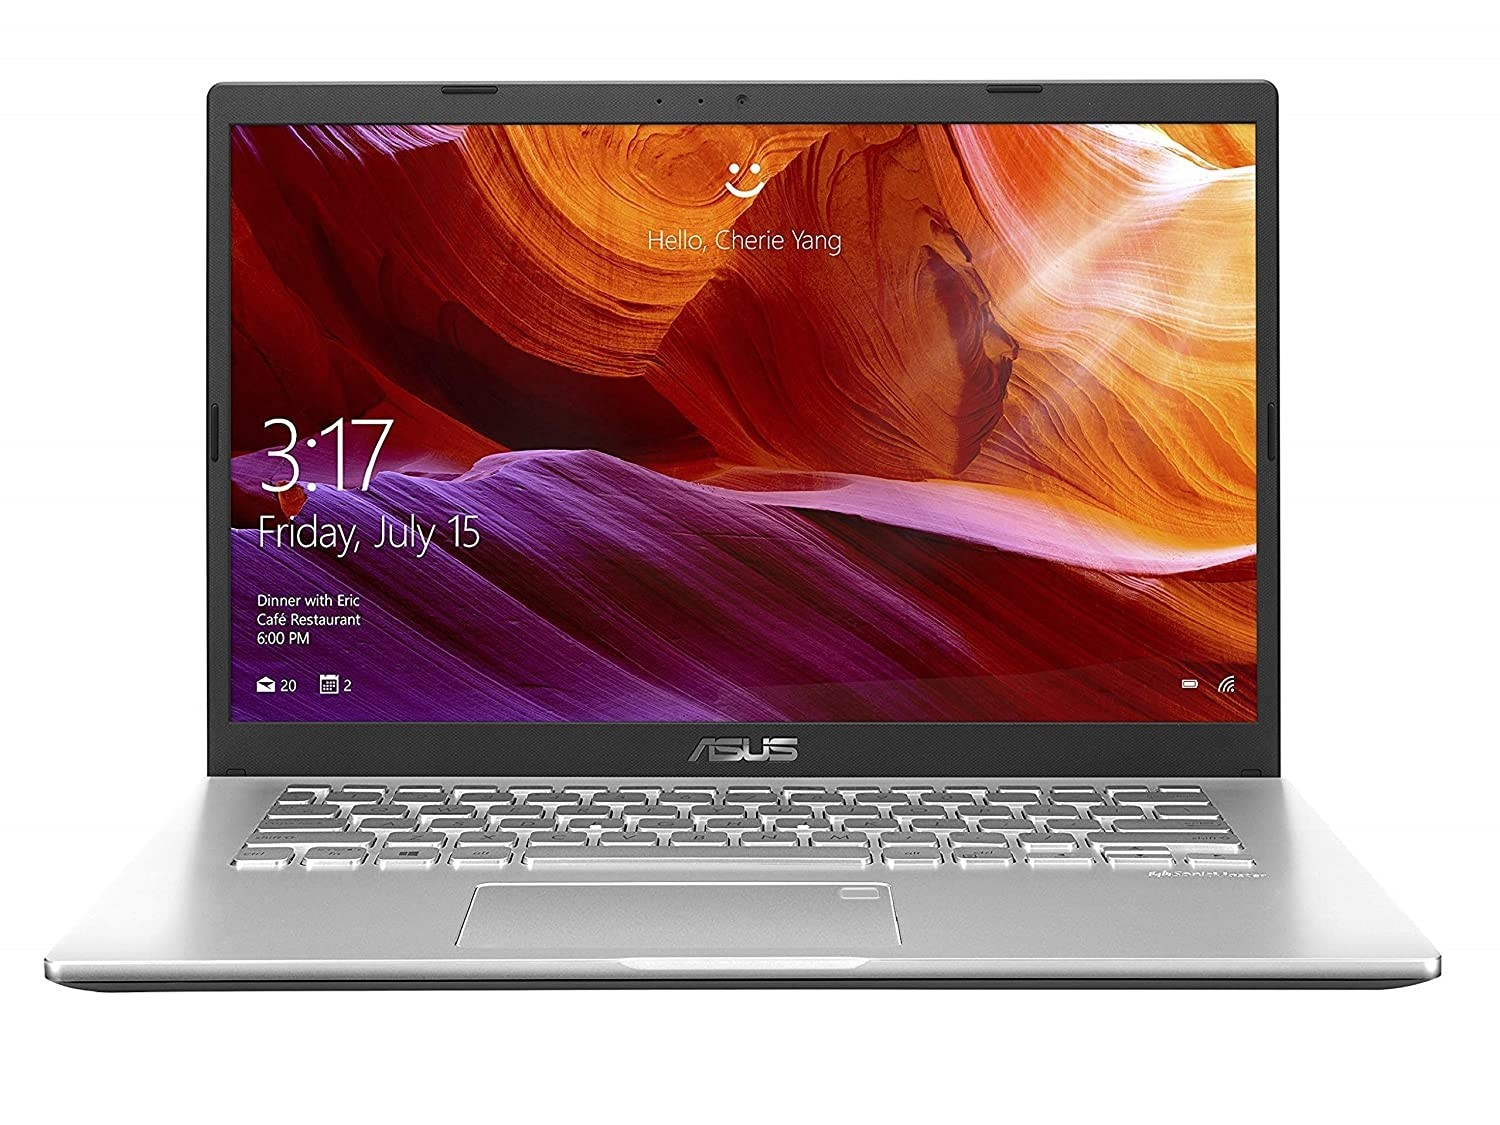 Refurbished laptops & desktops - ASUS VIVOBOOK 14 INTEL CORE I5-1035G1 10TH GEN 14-INCH FHD COMPACT AND LIGHT LAPTOP (8GB RAM/1TB HDD/WINDOWS 10/INTEGRATED GRAPHICS/TRANSPARENT SILVER/1.60 KG), X409JA-EK581T